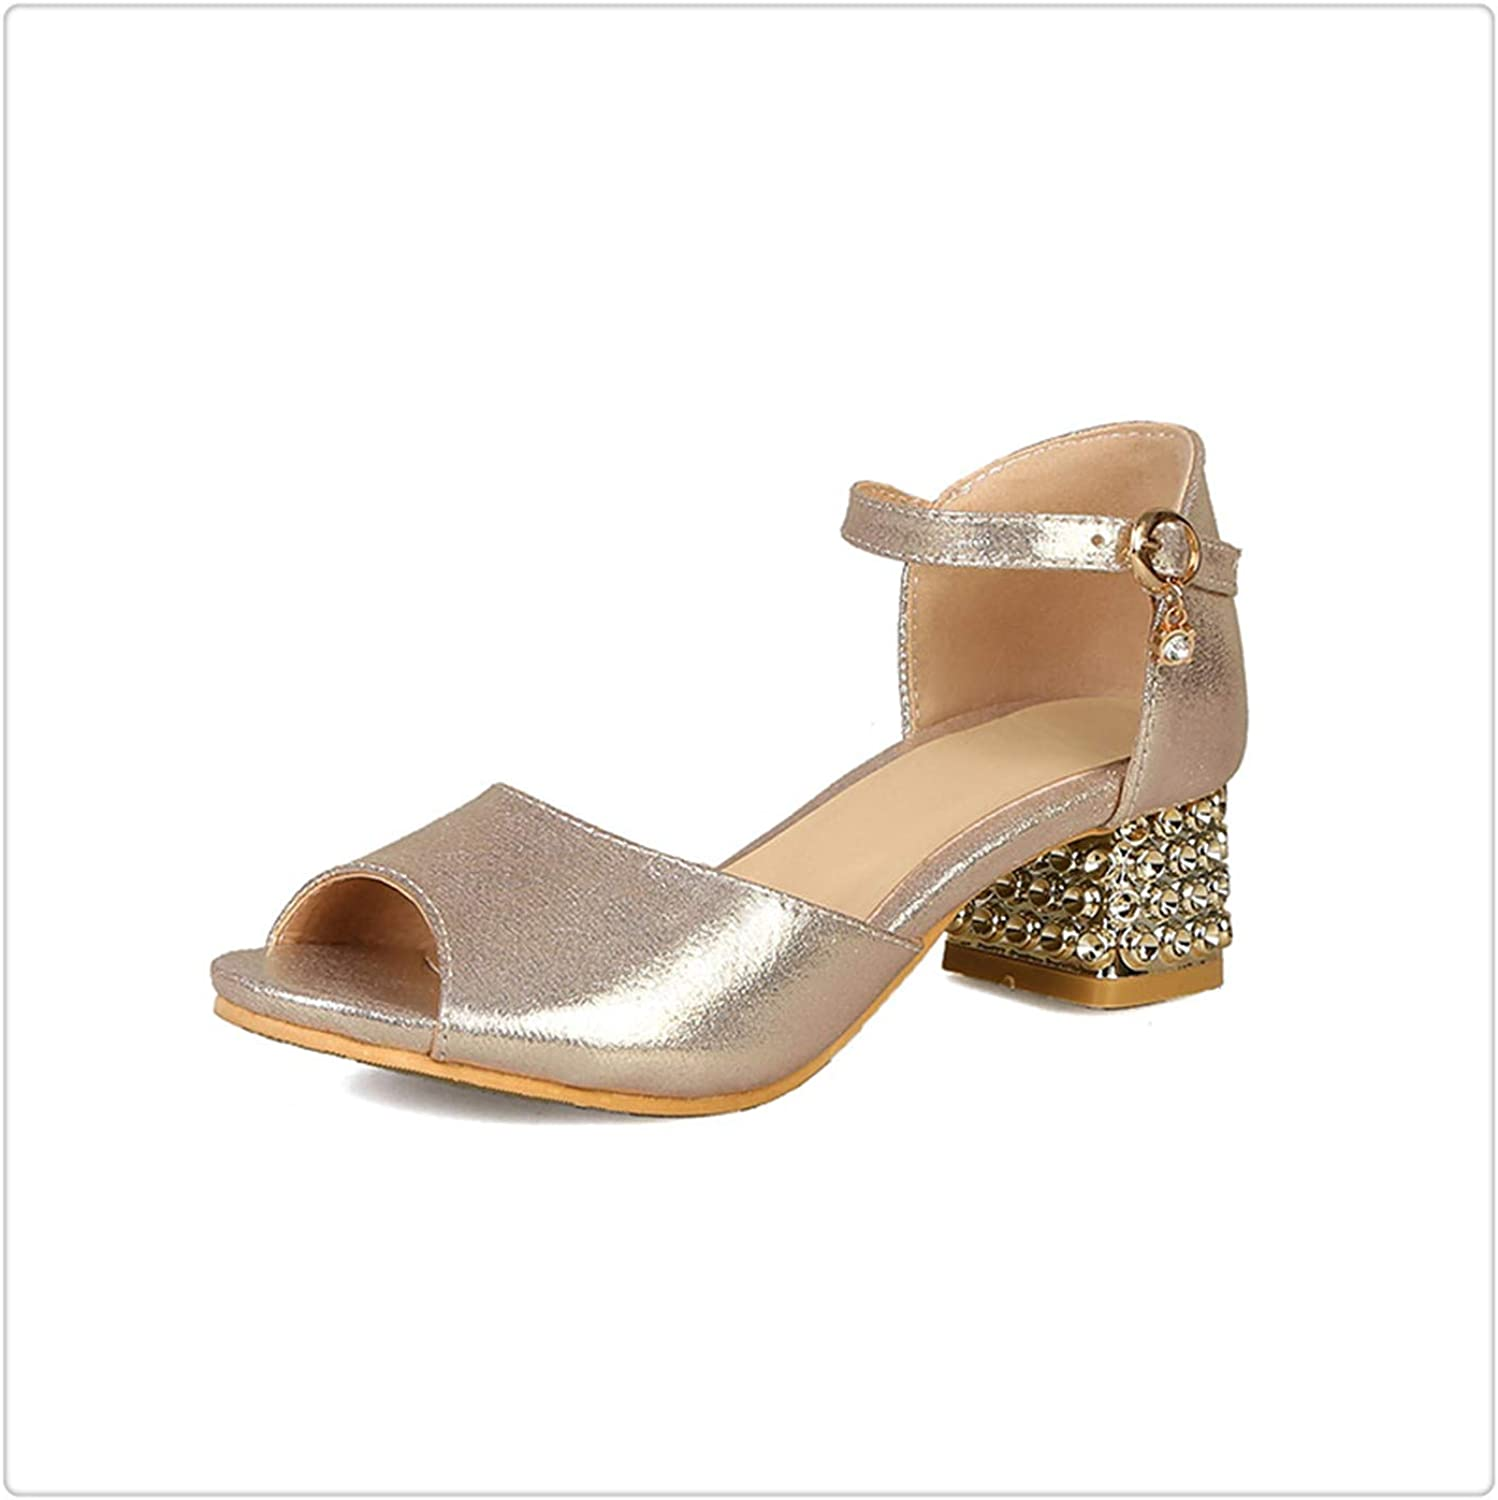 ZXCVB& Women Thick Med Heel Metal Sequined Cloth Party shoes Buckle Open Toe Sandal